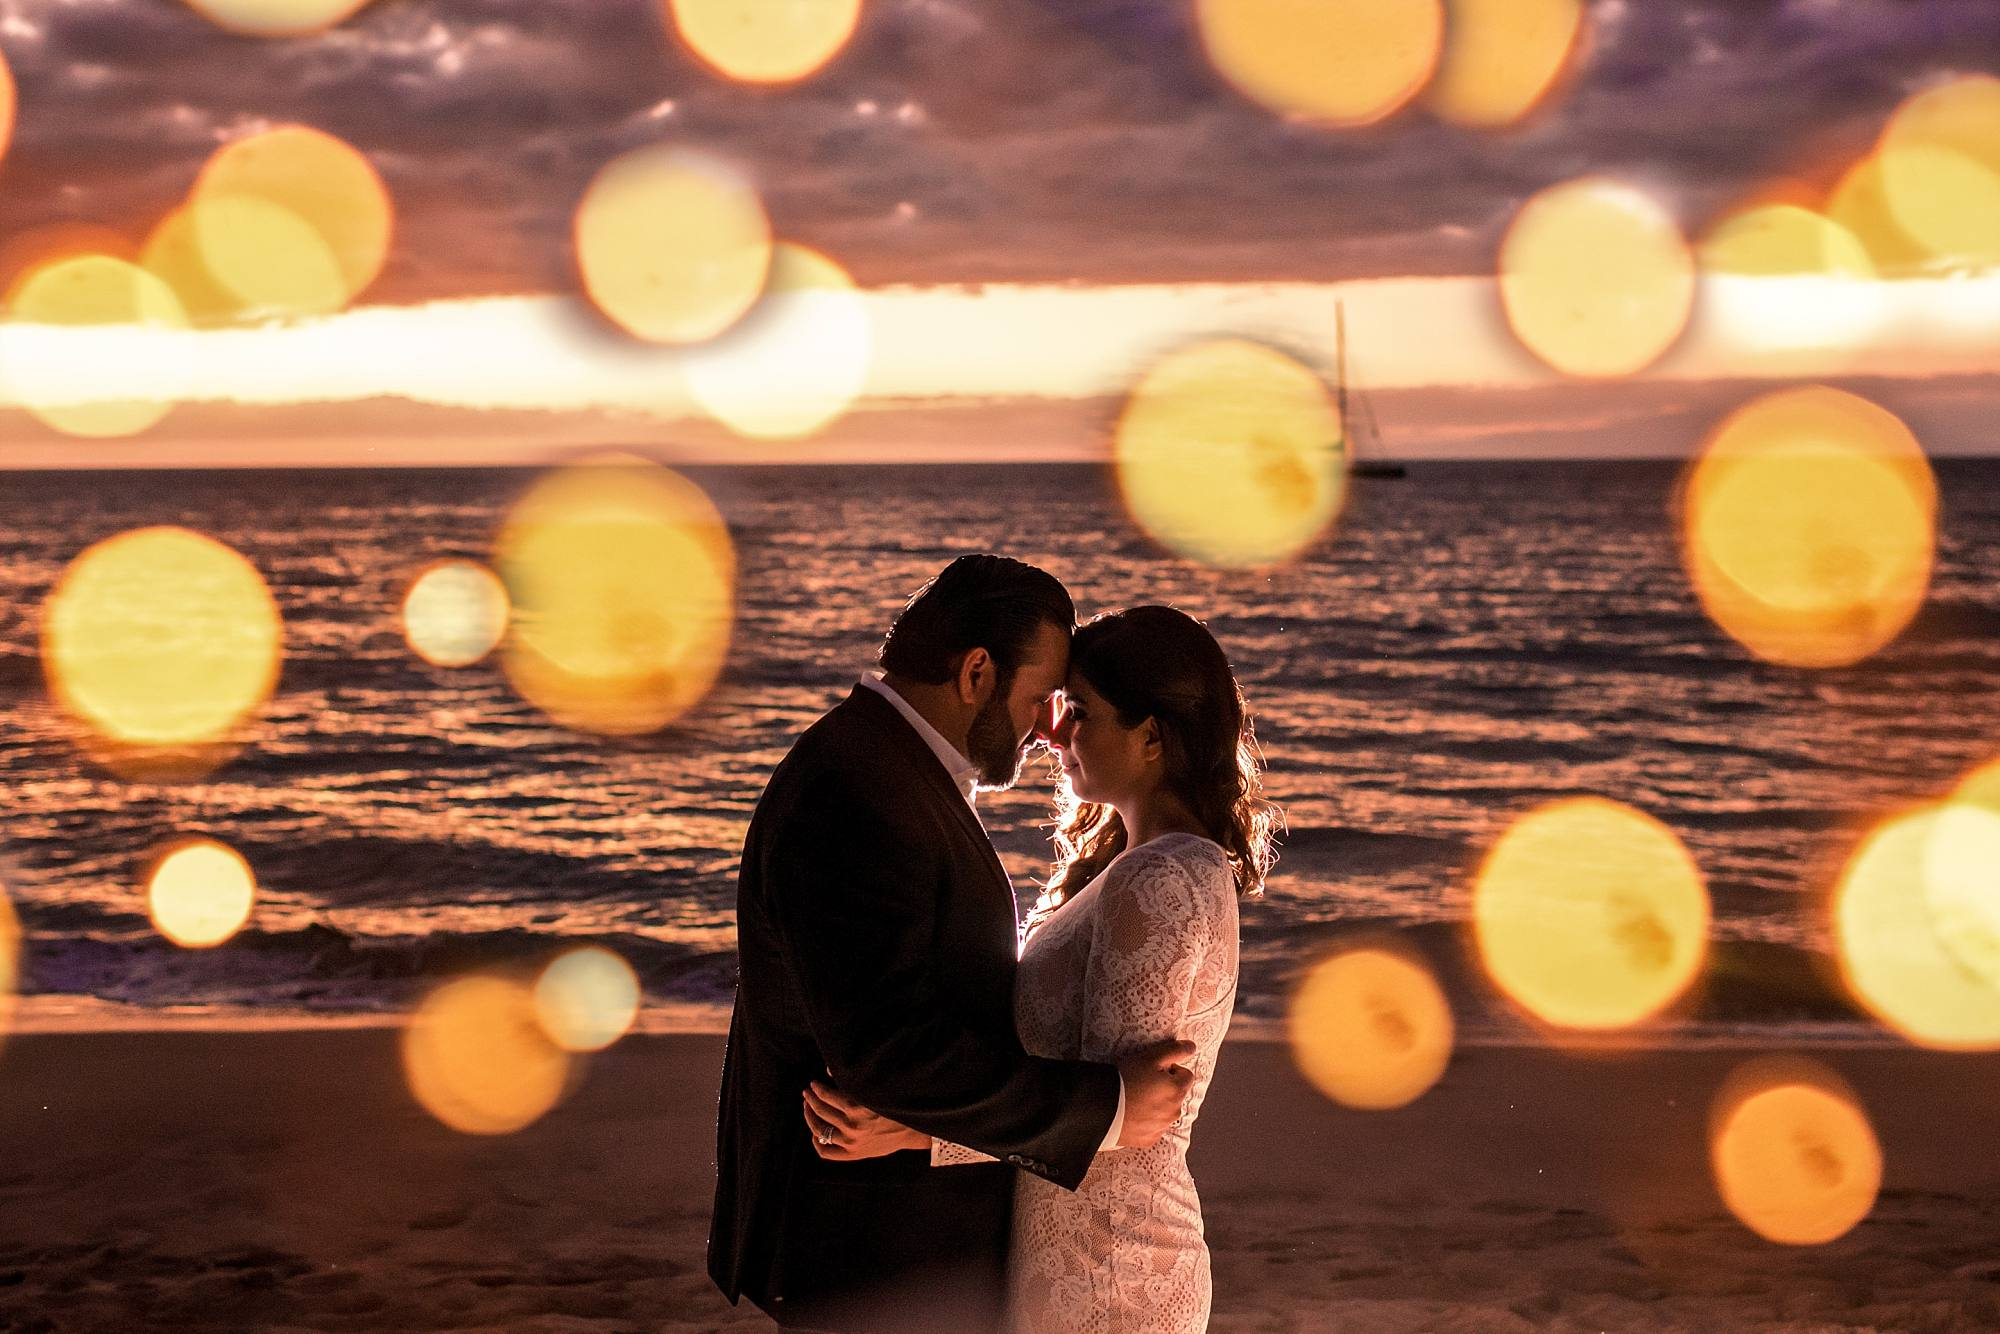 newlyweds embracing with light globes around them